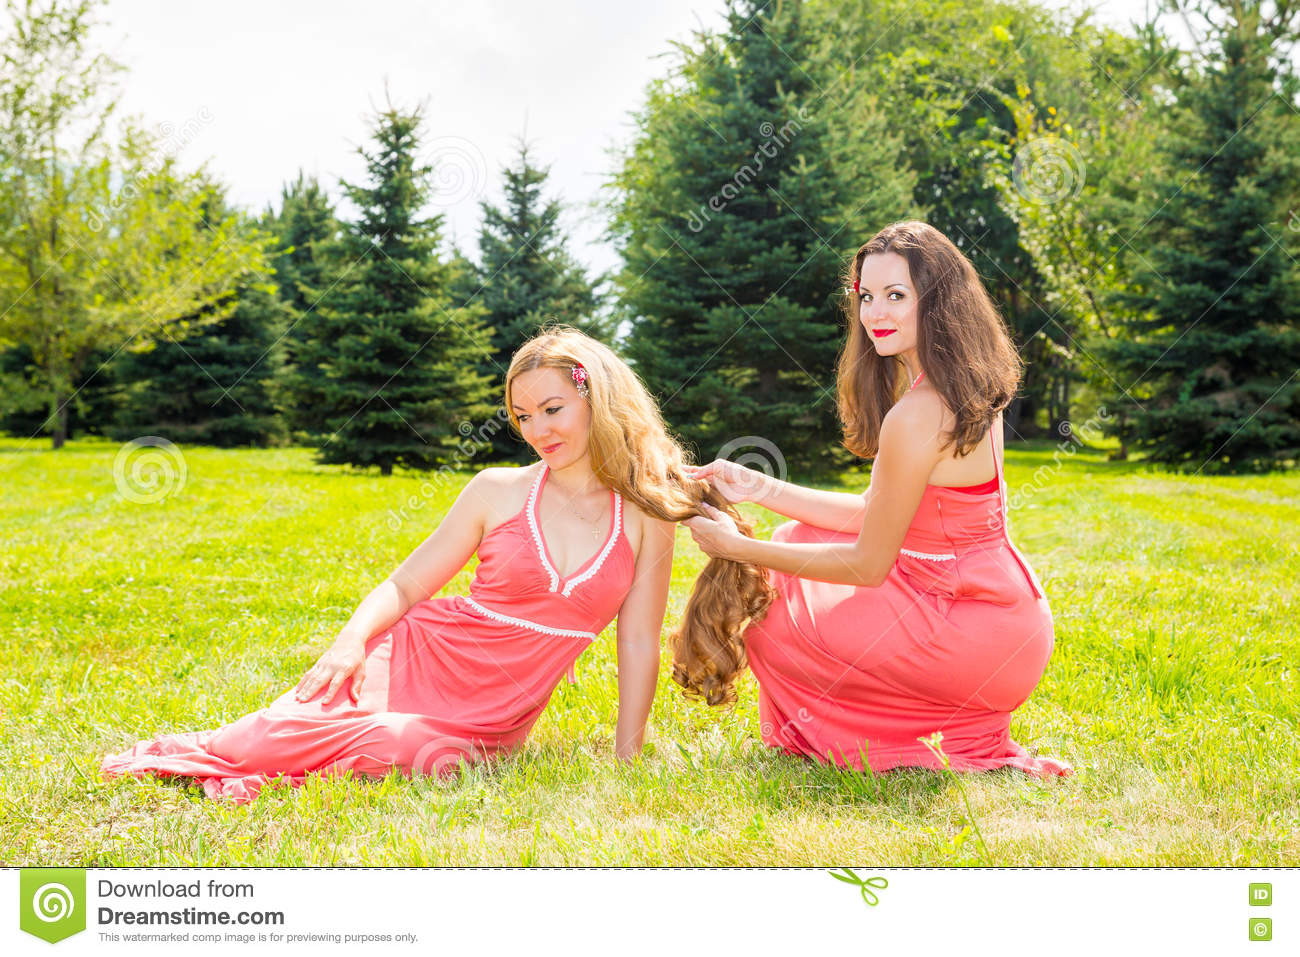 Two young beautiful woman with long hair and outdoor